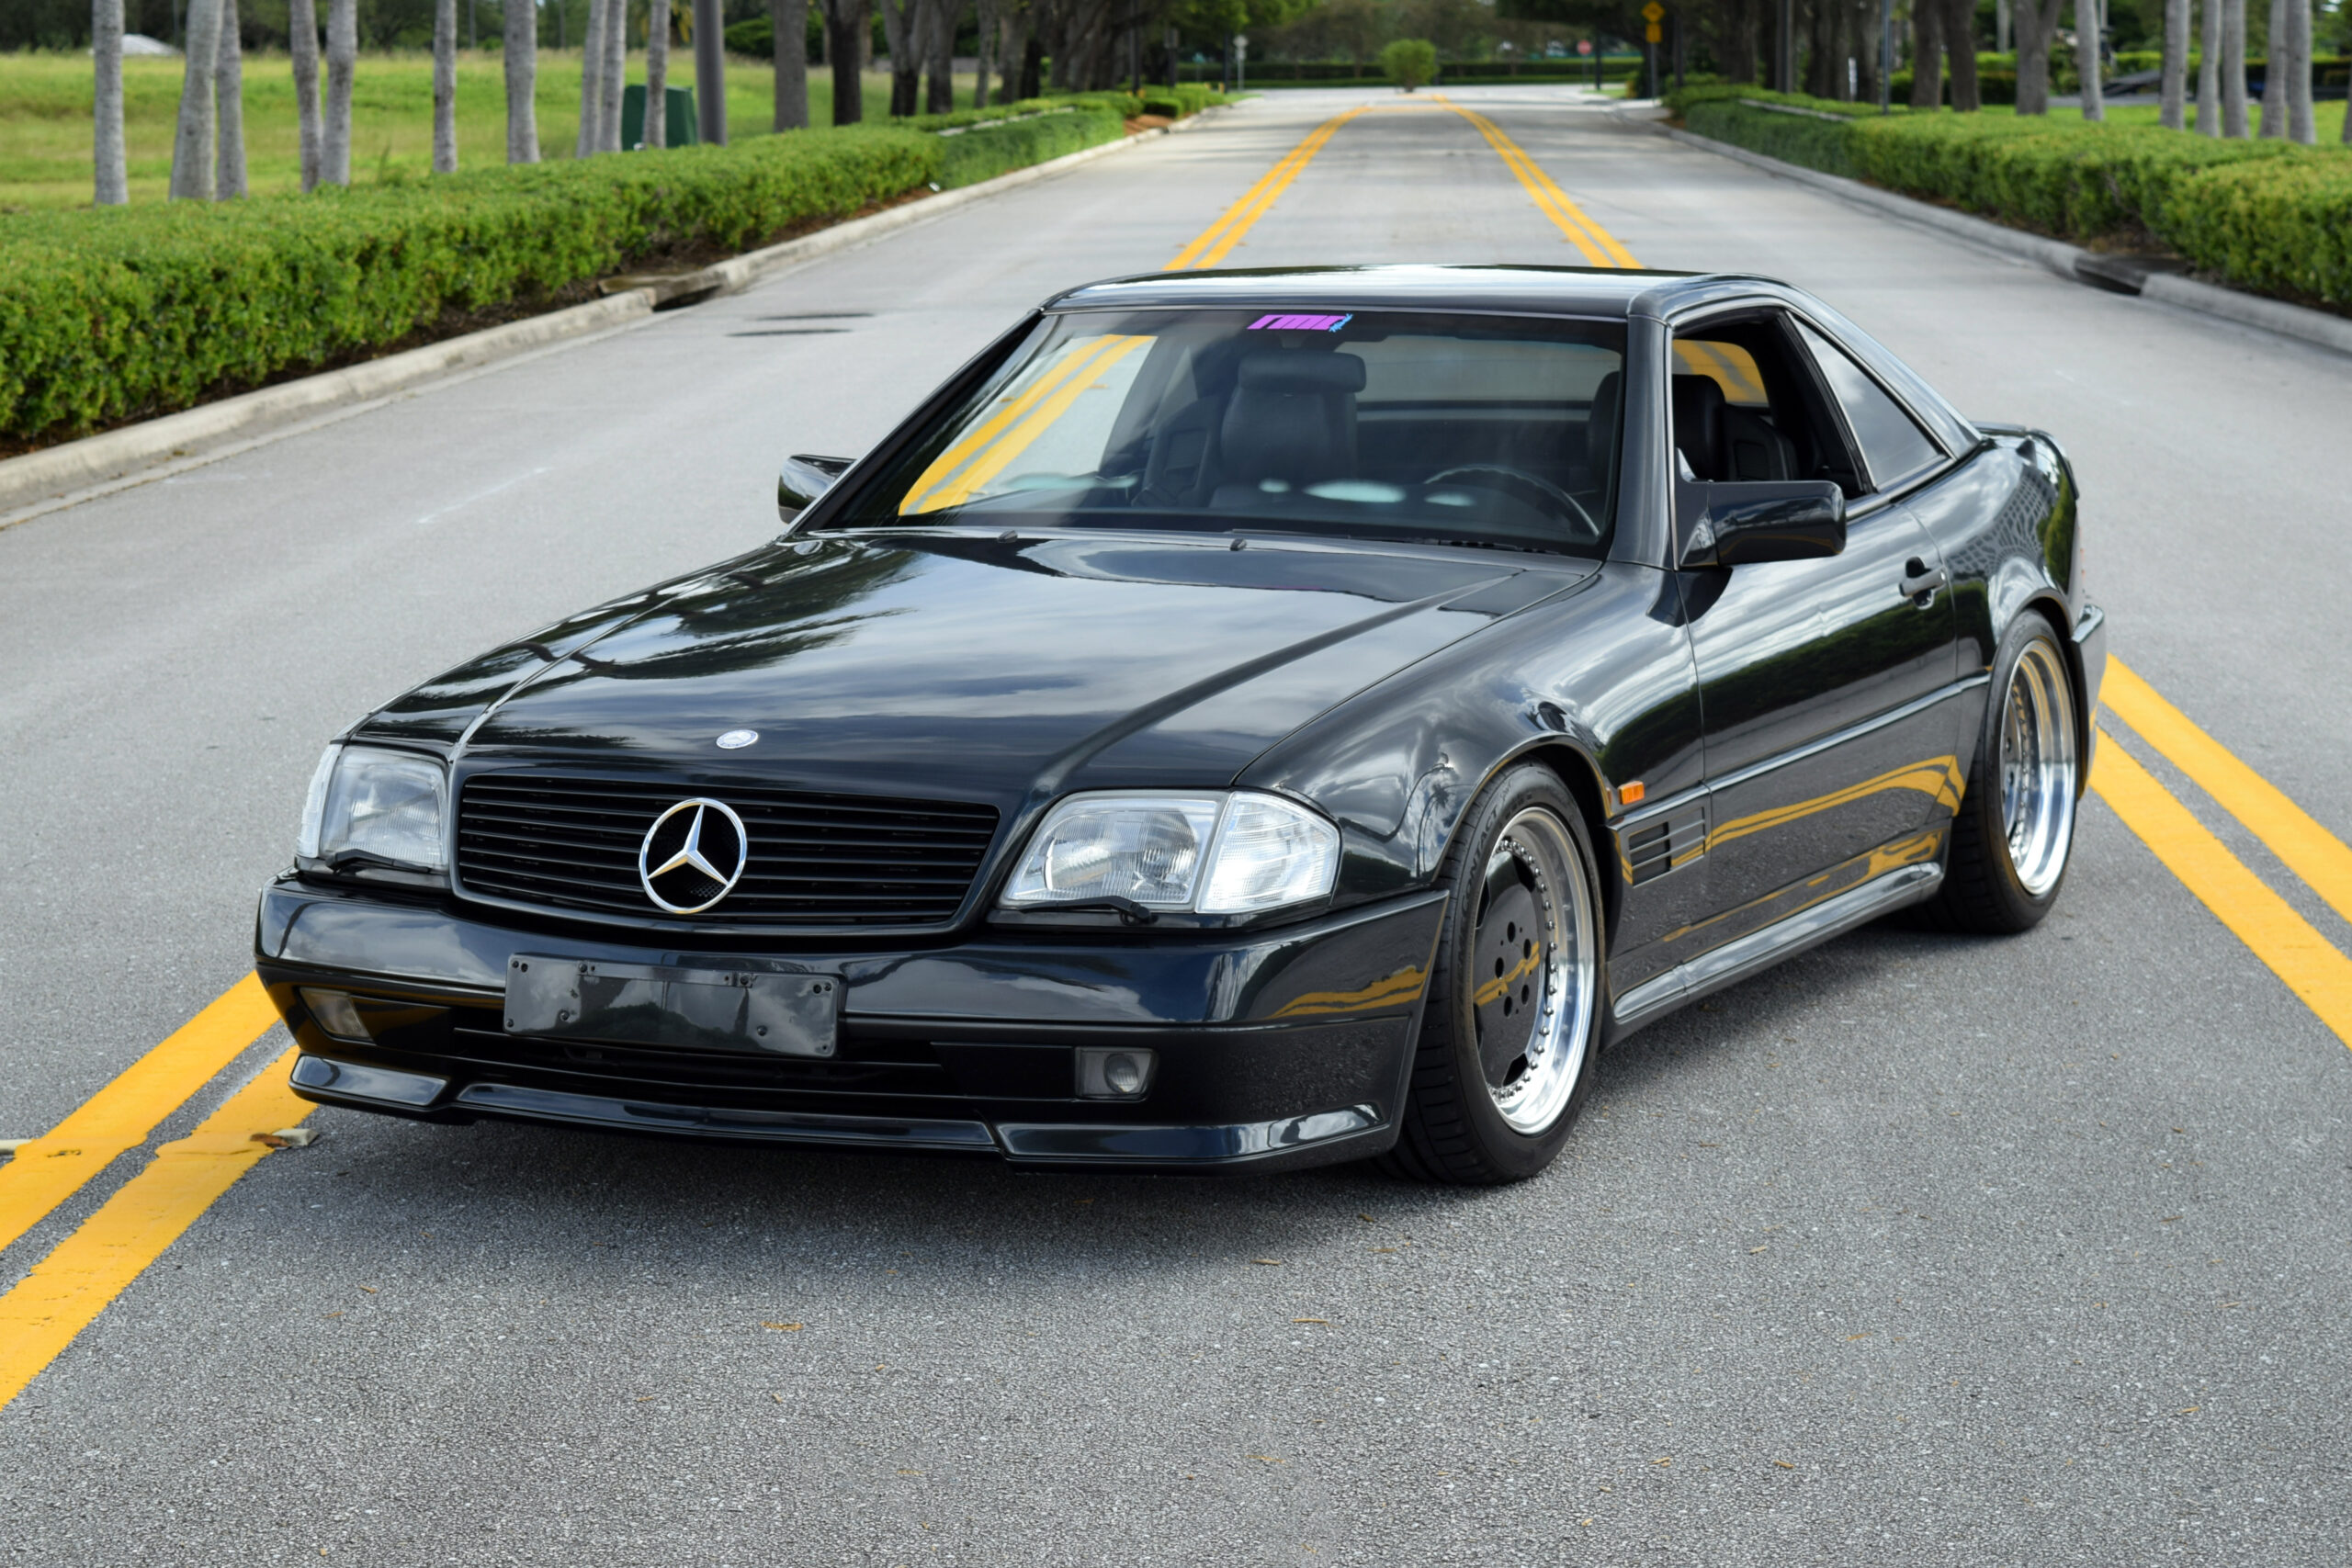 1991 Mercedes 500SL 6.0 AMG, one of 50 ever made, Pre-merger